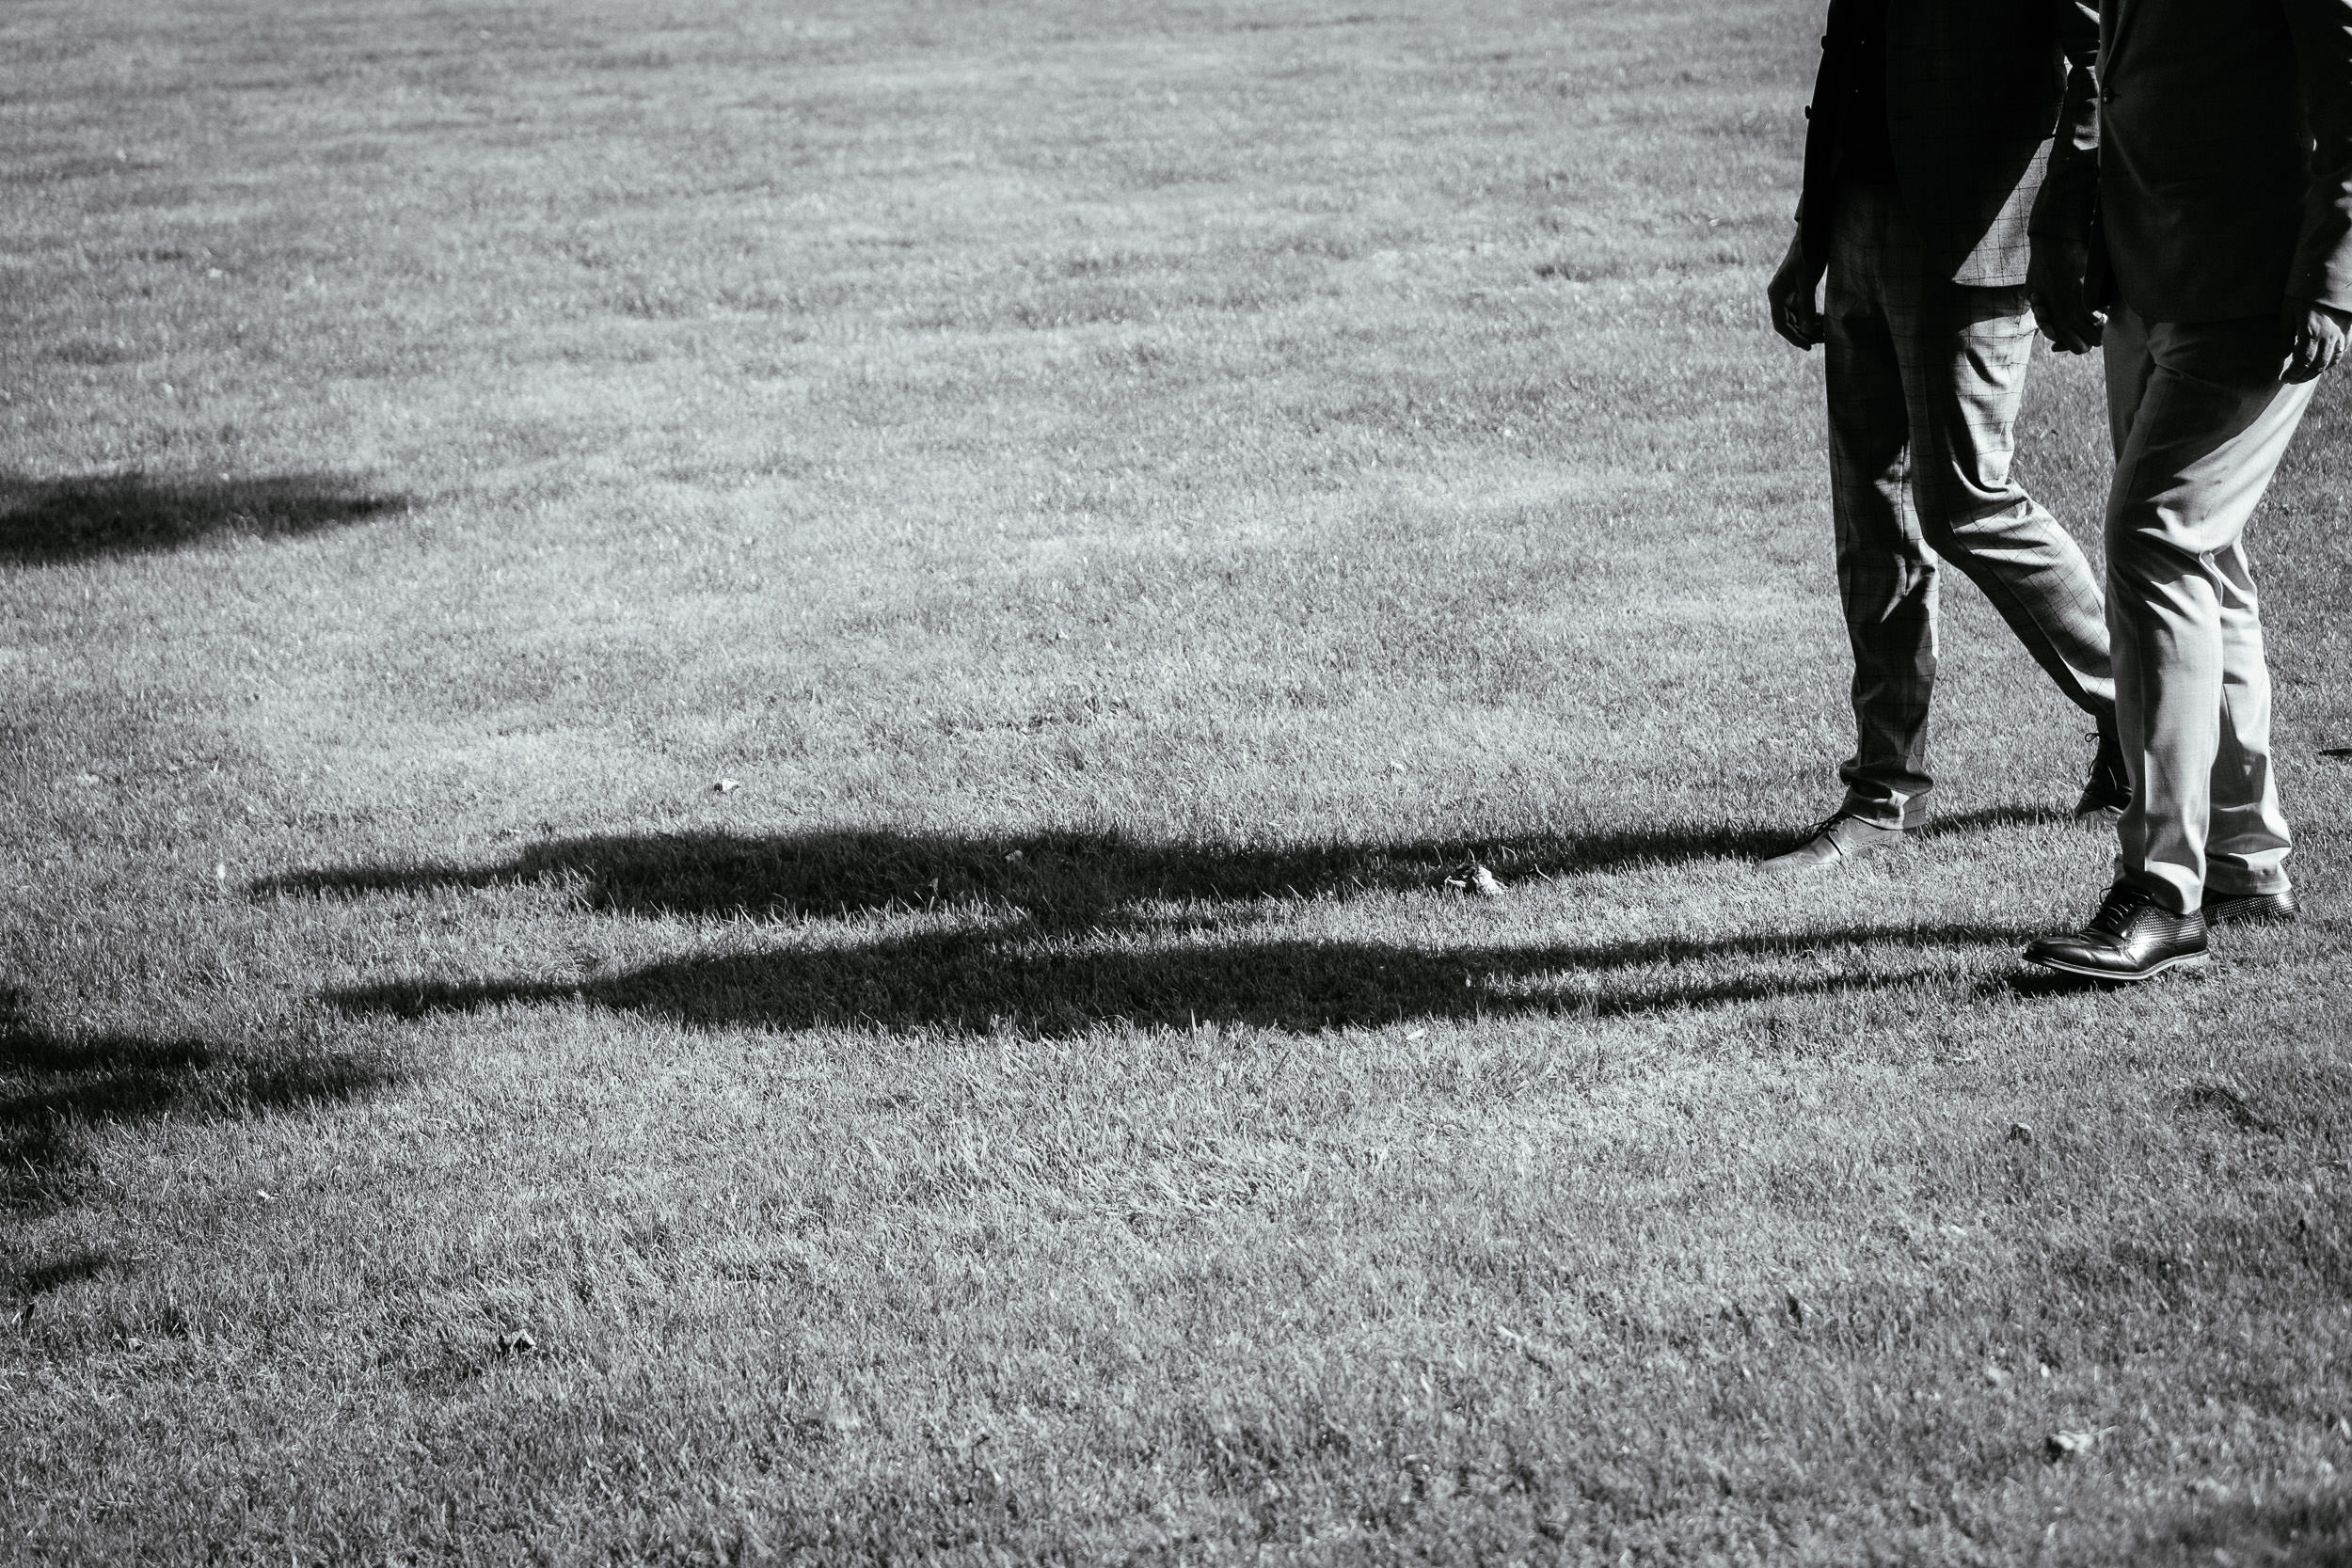 shadows of 2 grooms in grass